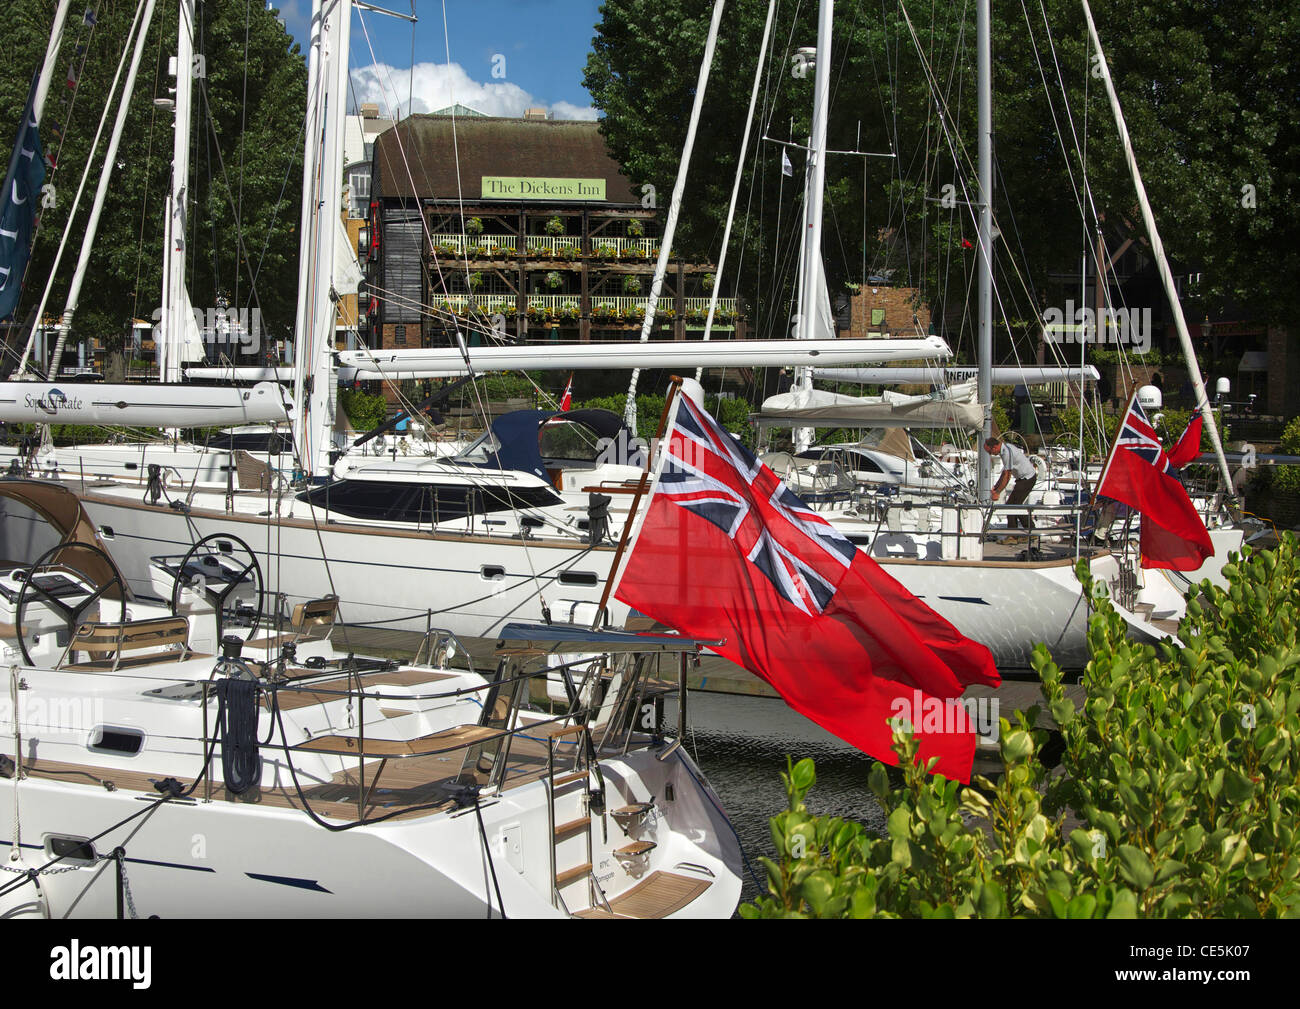 Red Ensign flags flying on yachts moored next to The Dickens Inn in St. Katharine's Dock, London, England, UK. - Stock Image